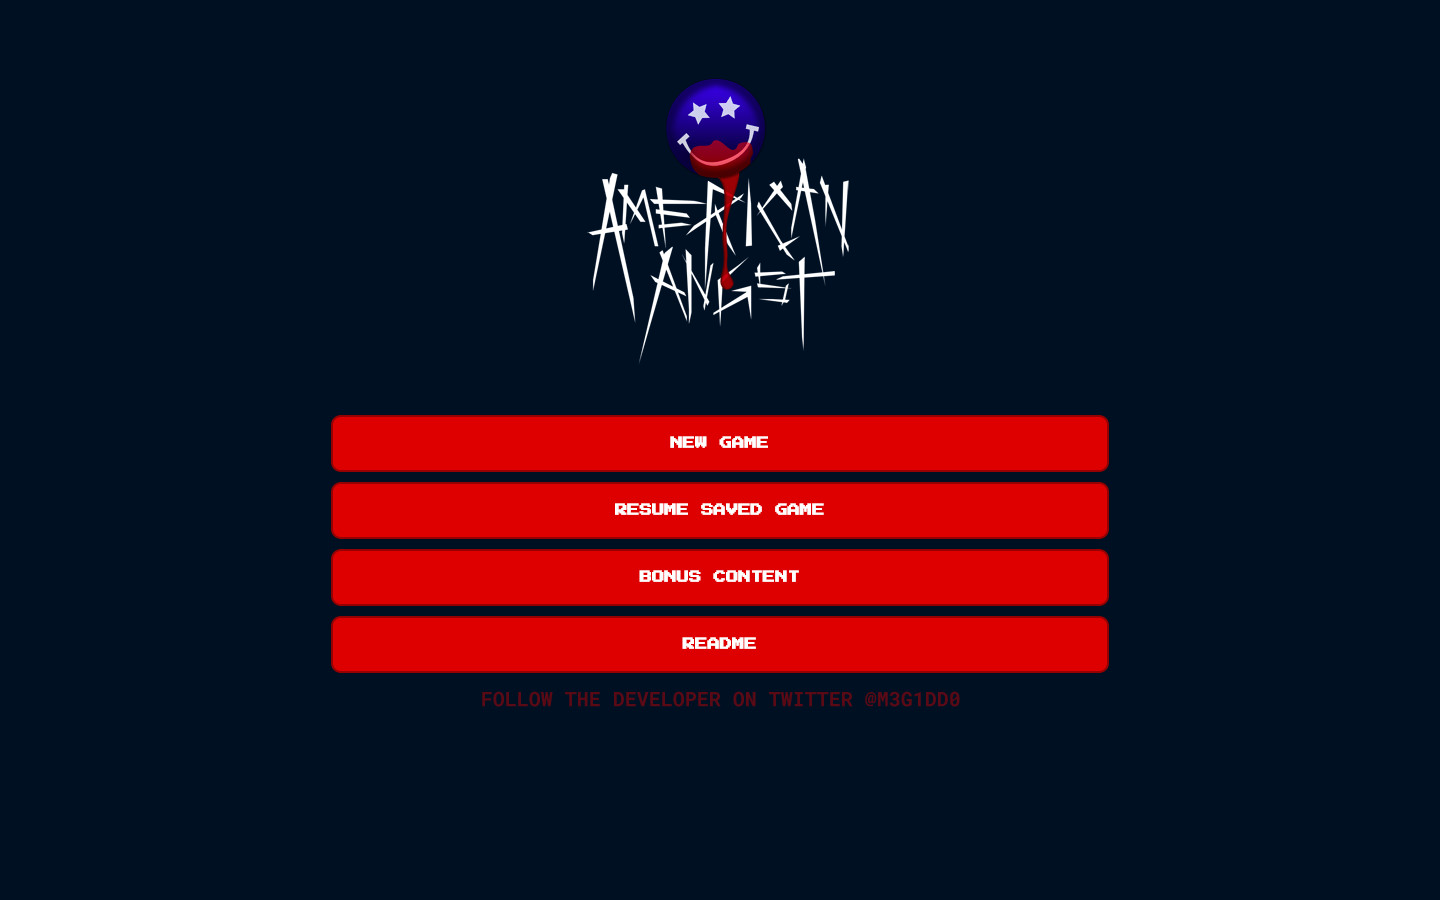 American Angst (Steam Deluxe Edition) - What's On Steam